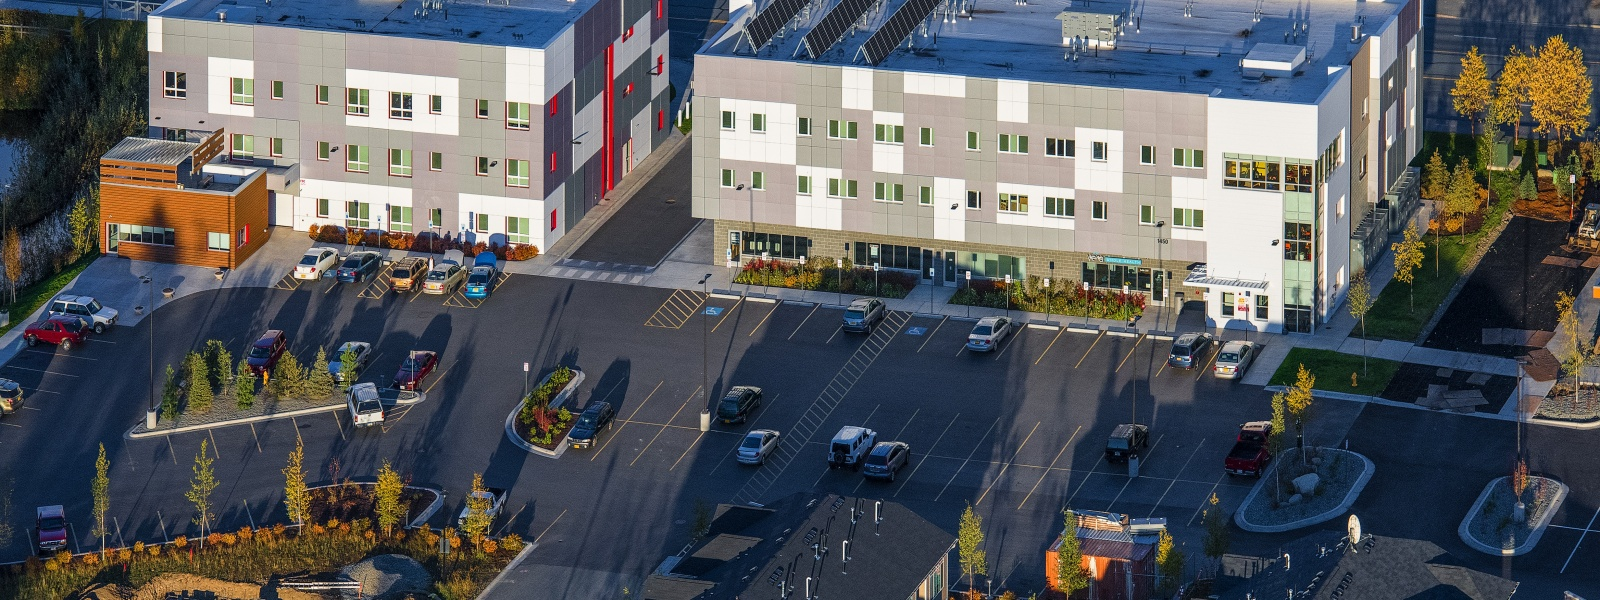 1450 Muldoon Rd, Anchorage, 99504, ,Commercial Space,For Rent,Muldoon Rd,1,1074